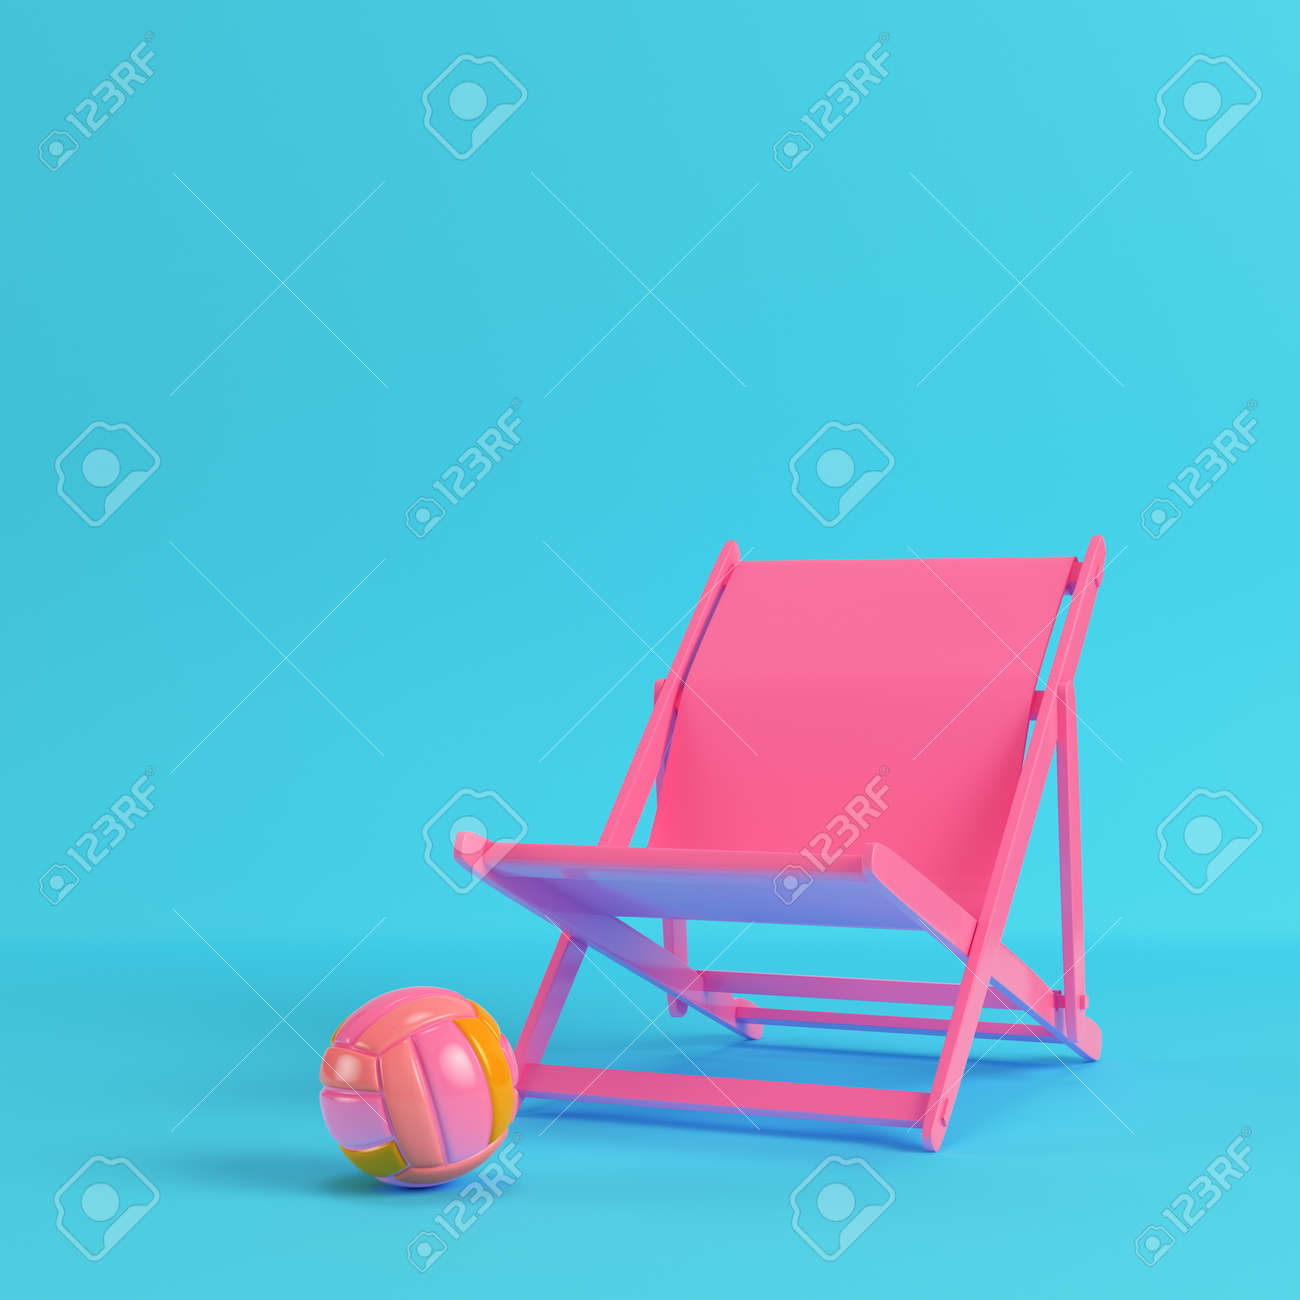 pink beach chair osaki os 4000 massage review with volleyball ball on bright blue background in pastel colors minimalism concept